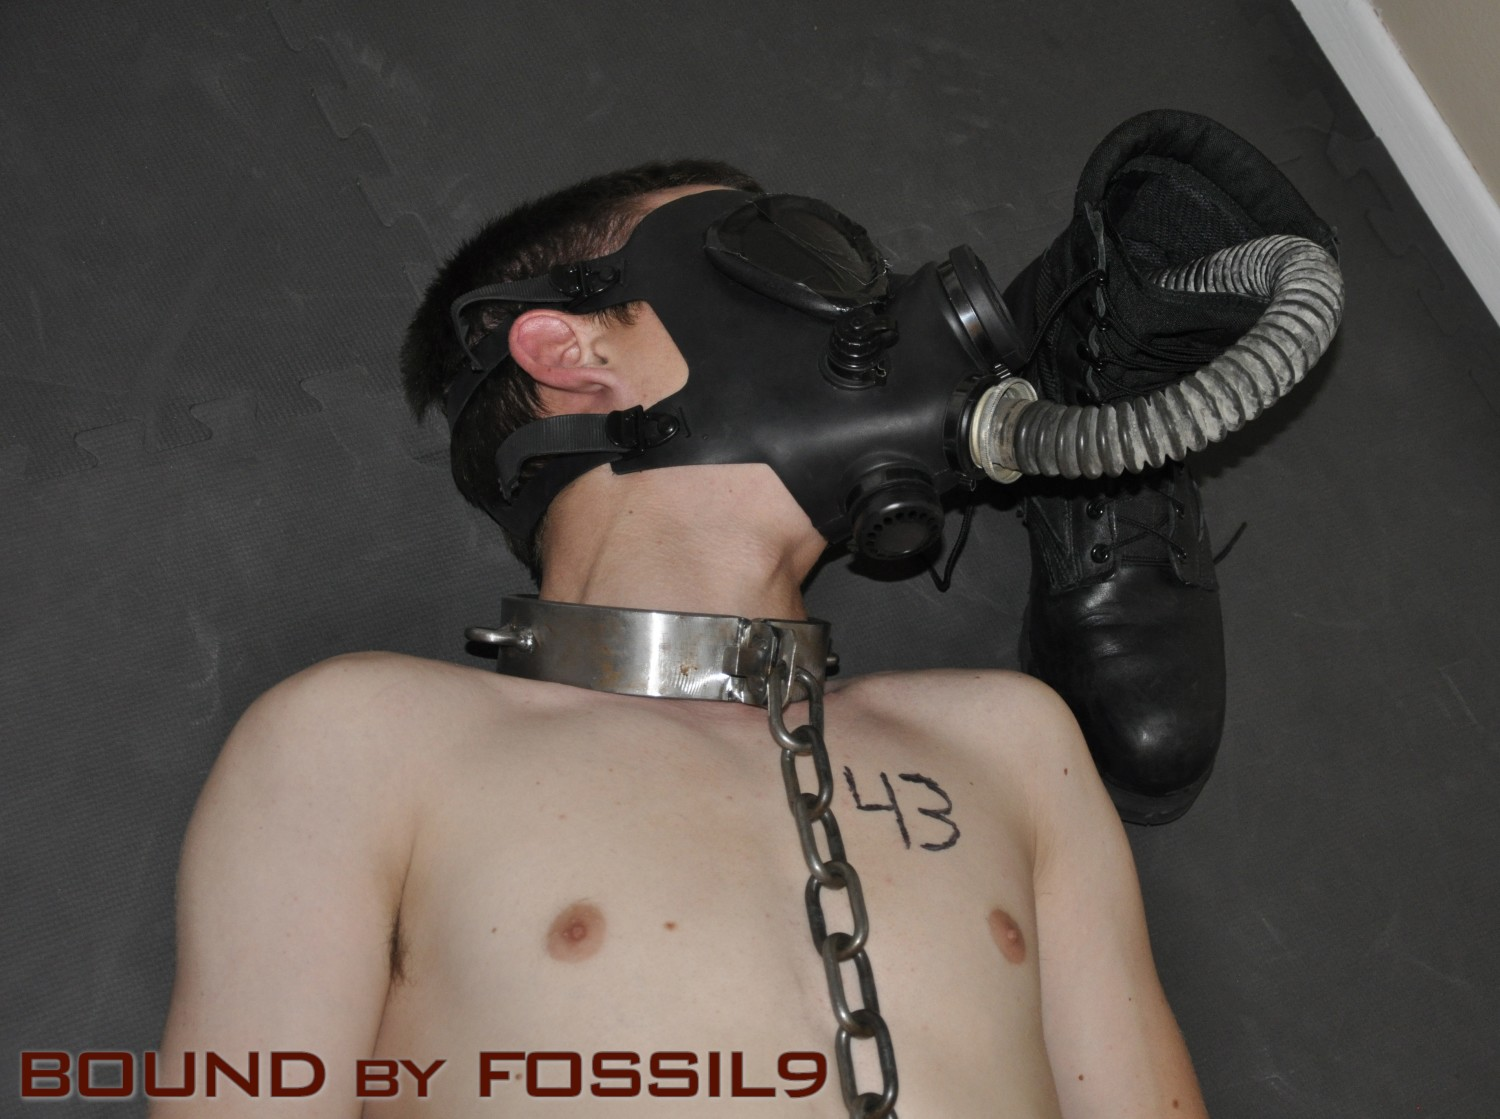 BOUND by Fossil9